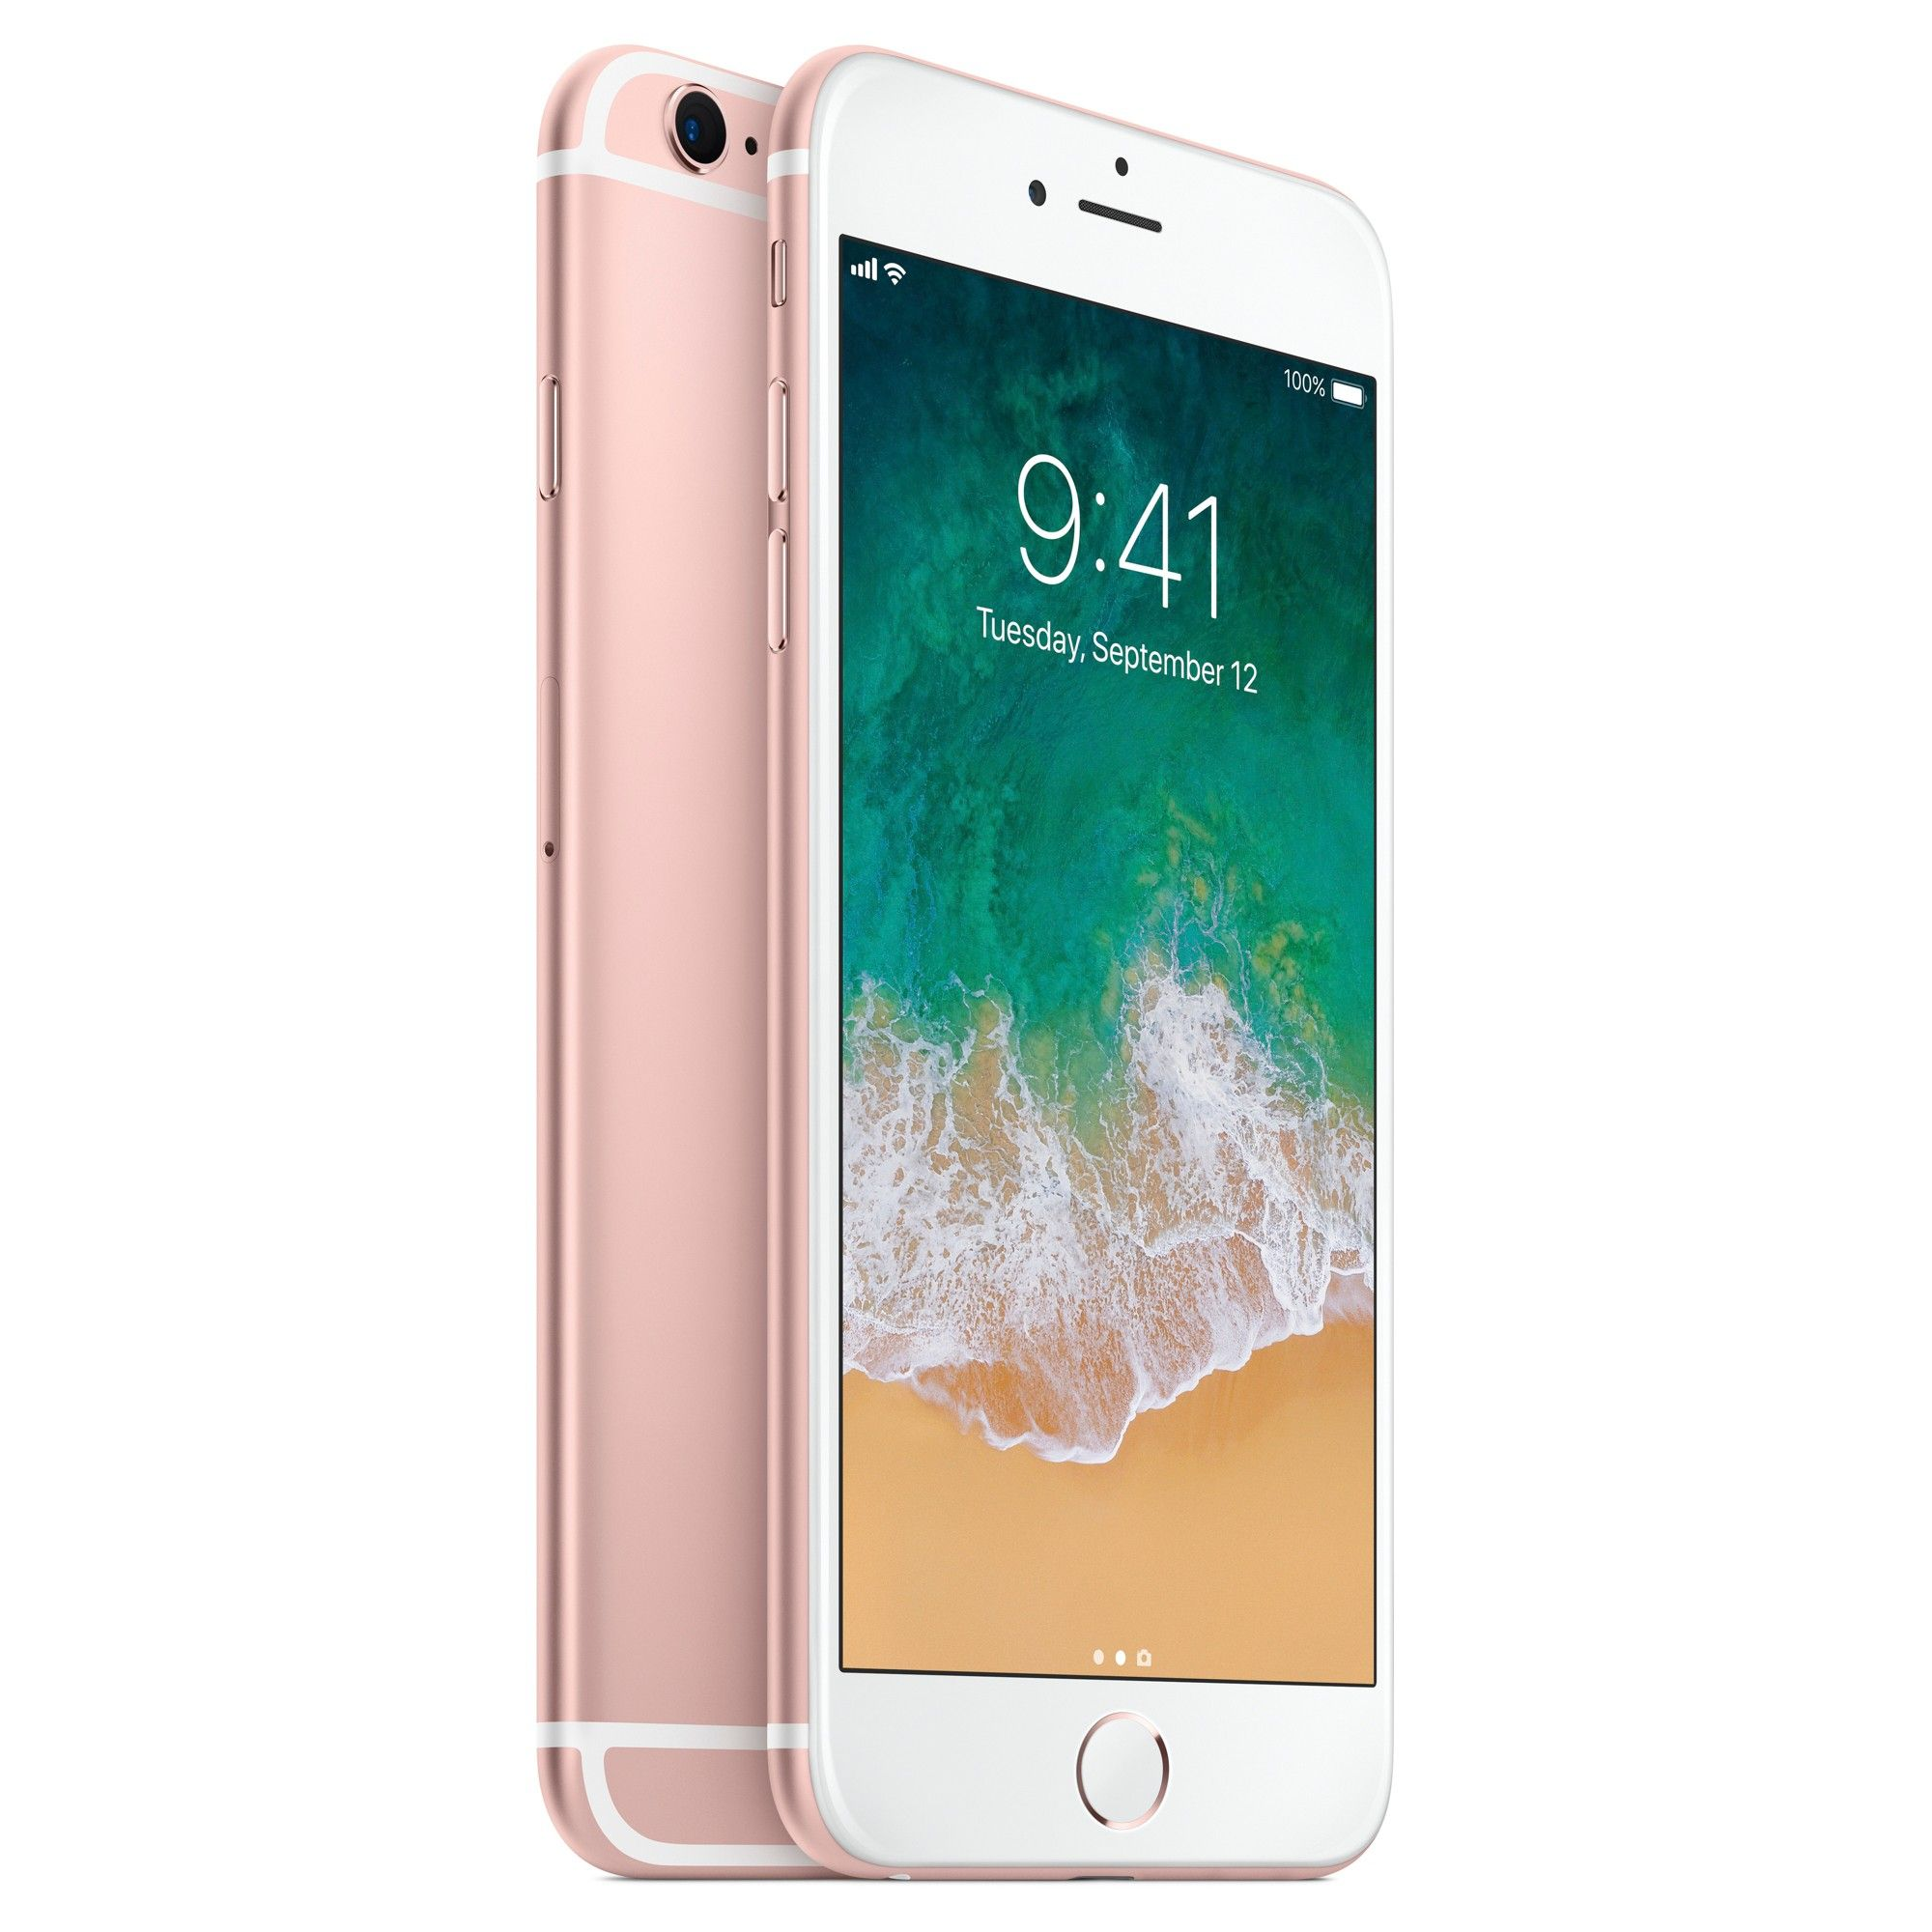 Unlocked iPhone 6s Plus 64GB Rose Gold Certified Refurbished